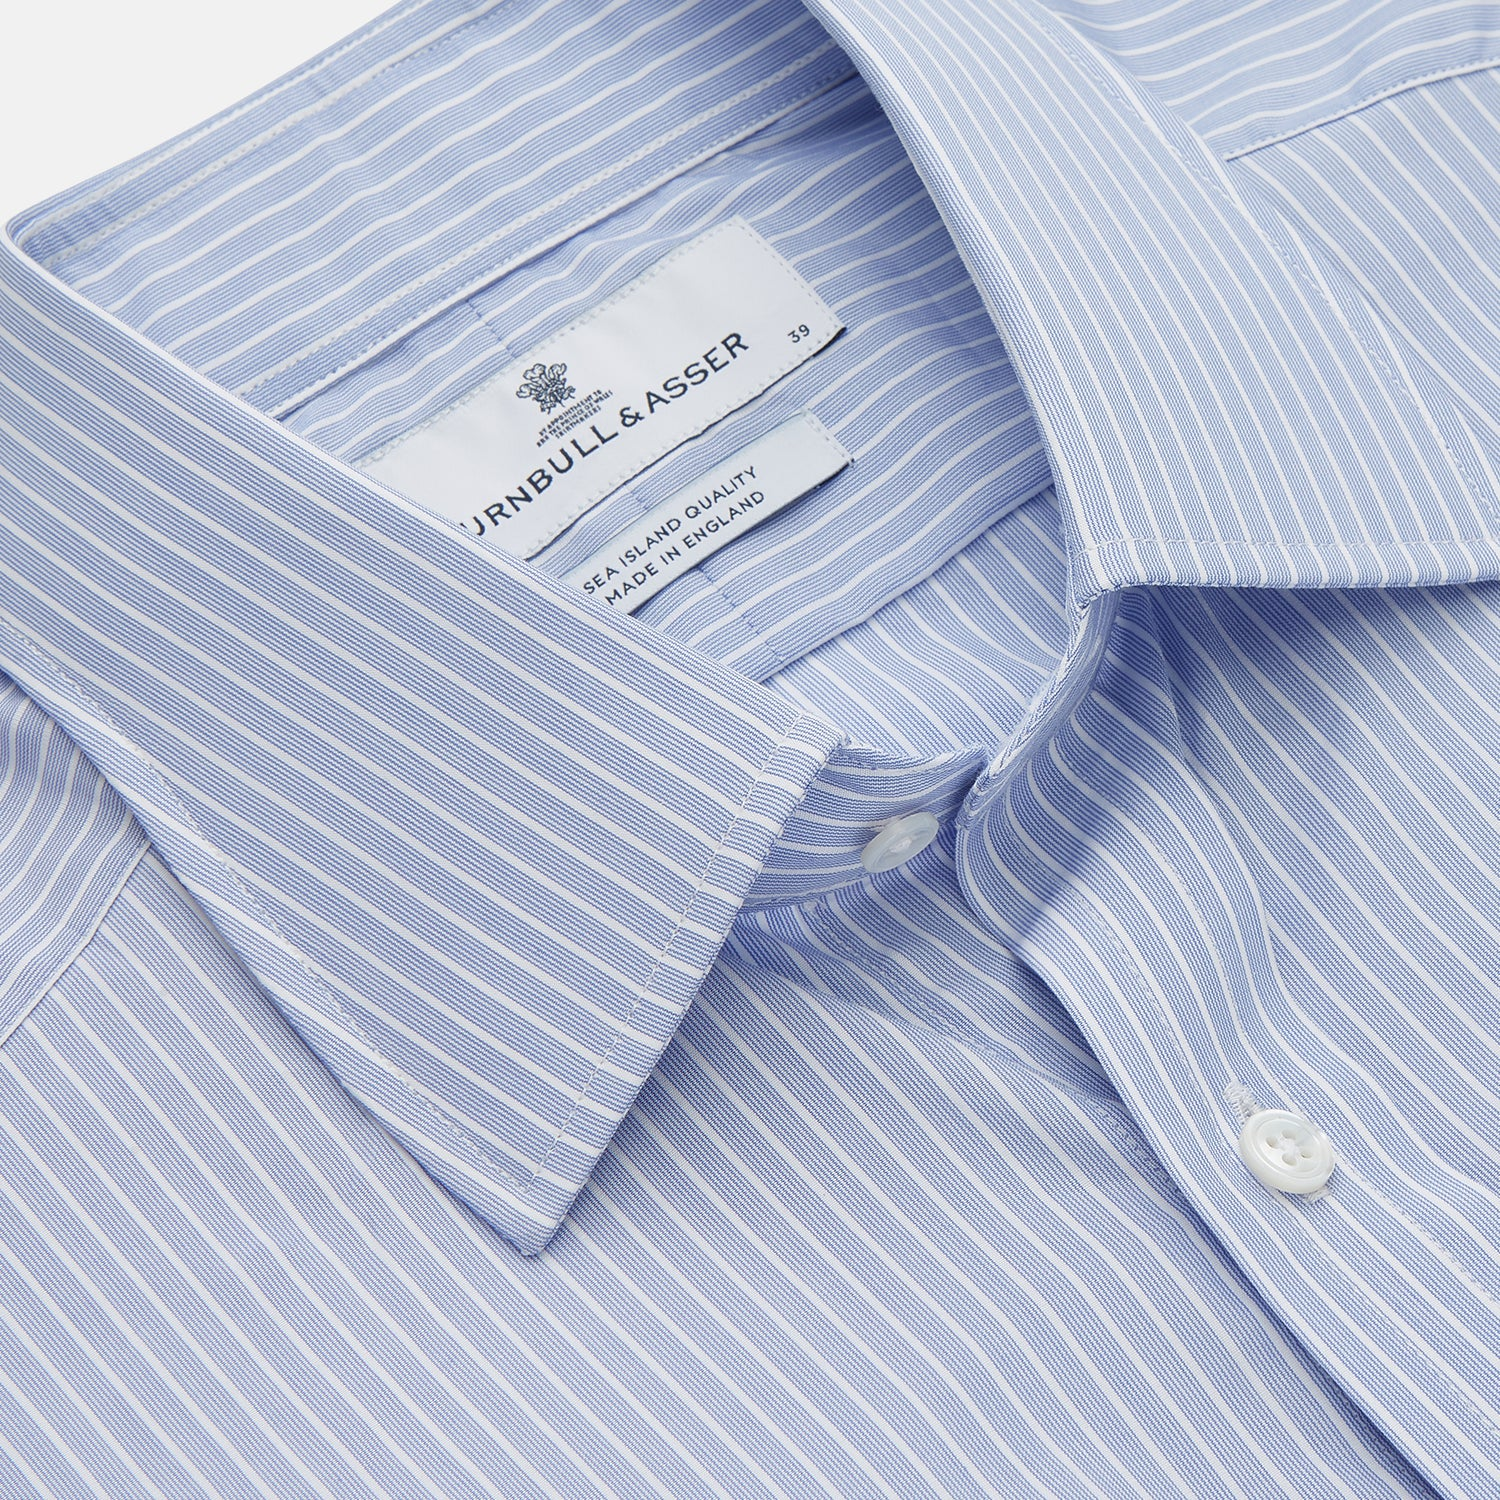 Blue And White Stripe Sea Island Quality Cotton Shirt With T&A Collar and 3-Button Cuffs